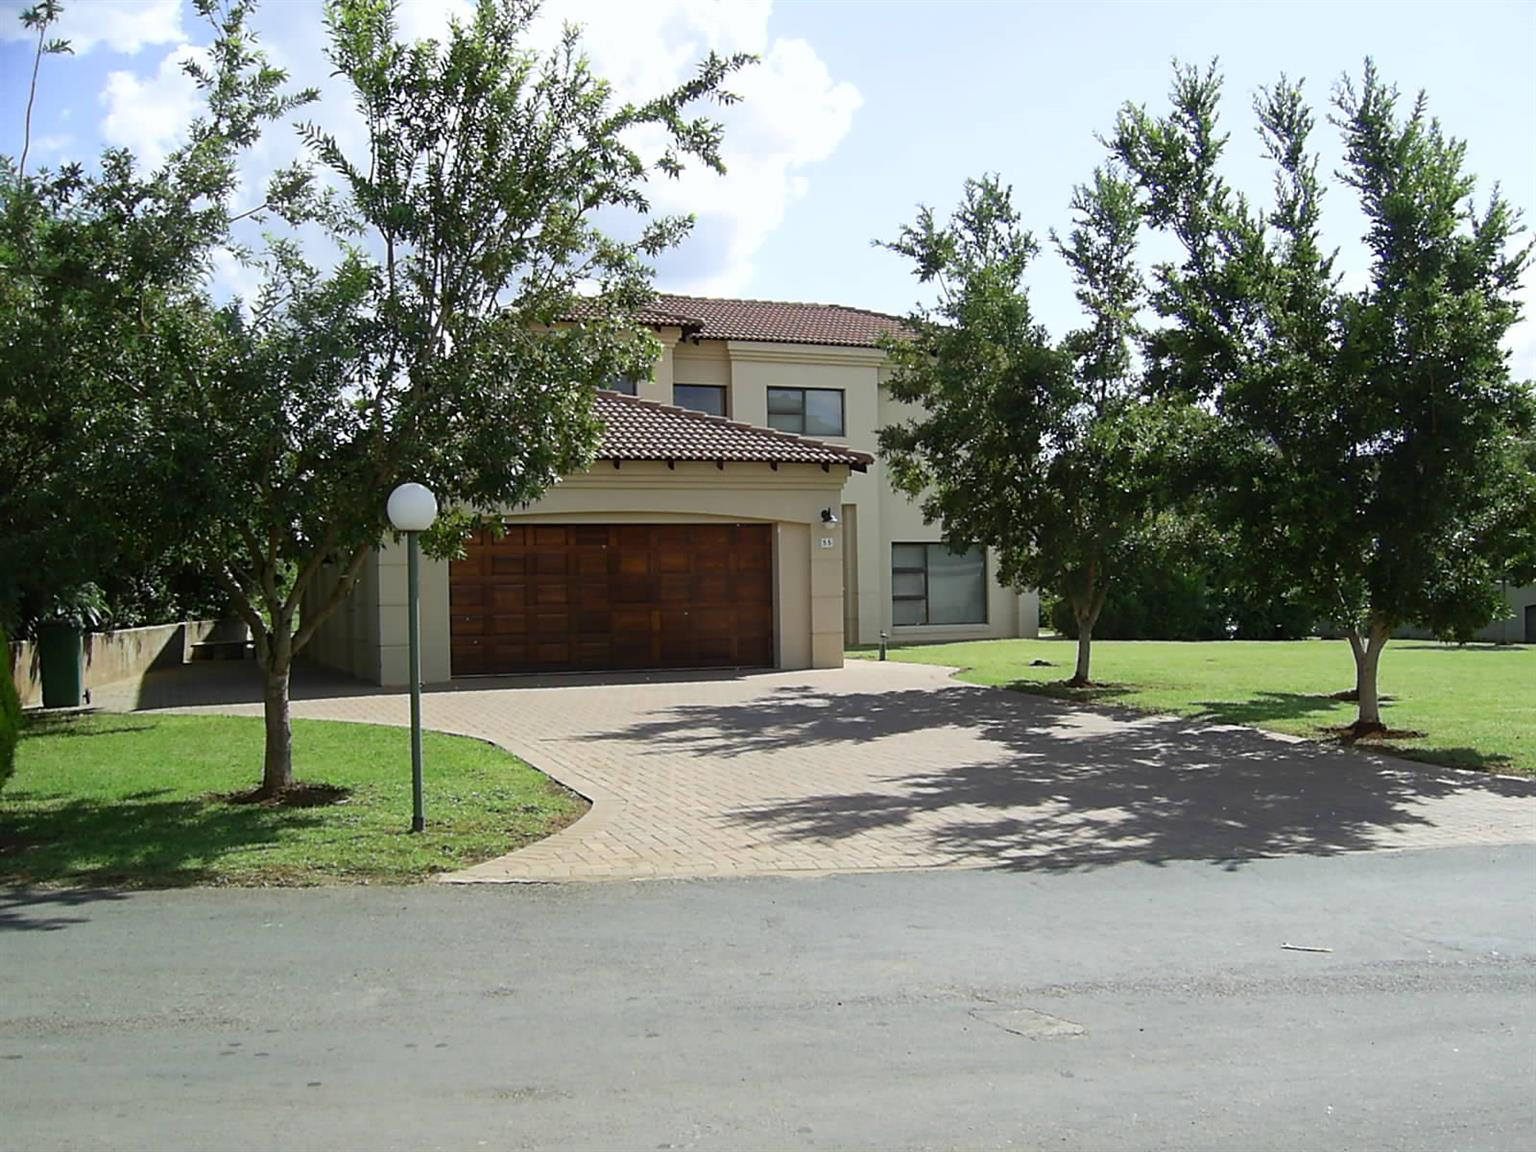 In Secure Equestrian, Boating, Golfing Estate on the Shores of Hartbeespoort Dam